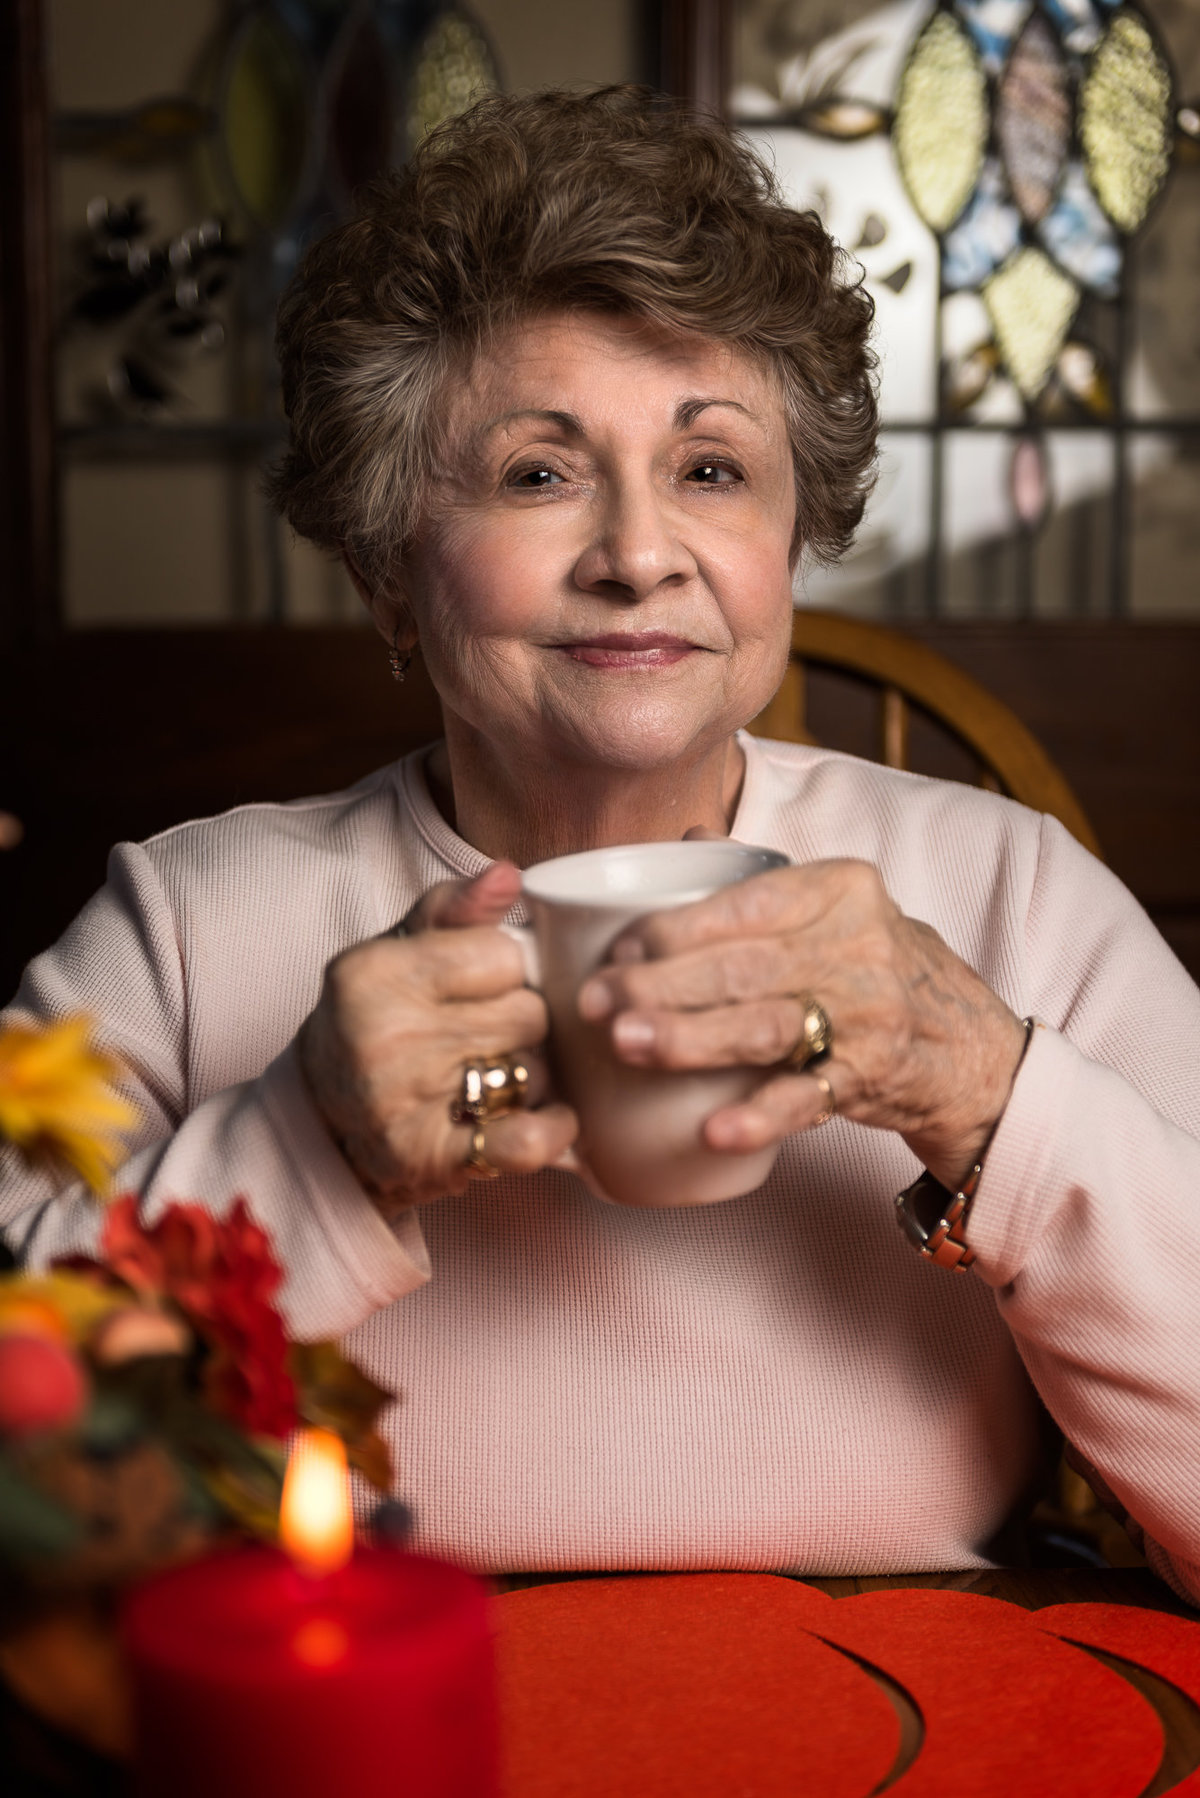 Woman Portrait with coffee. Photo by Stacy Holbert Booneville AR